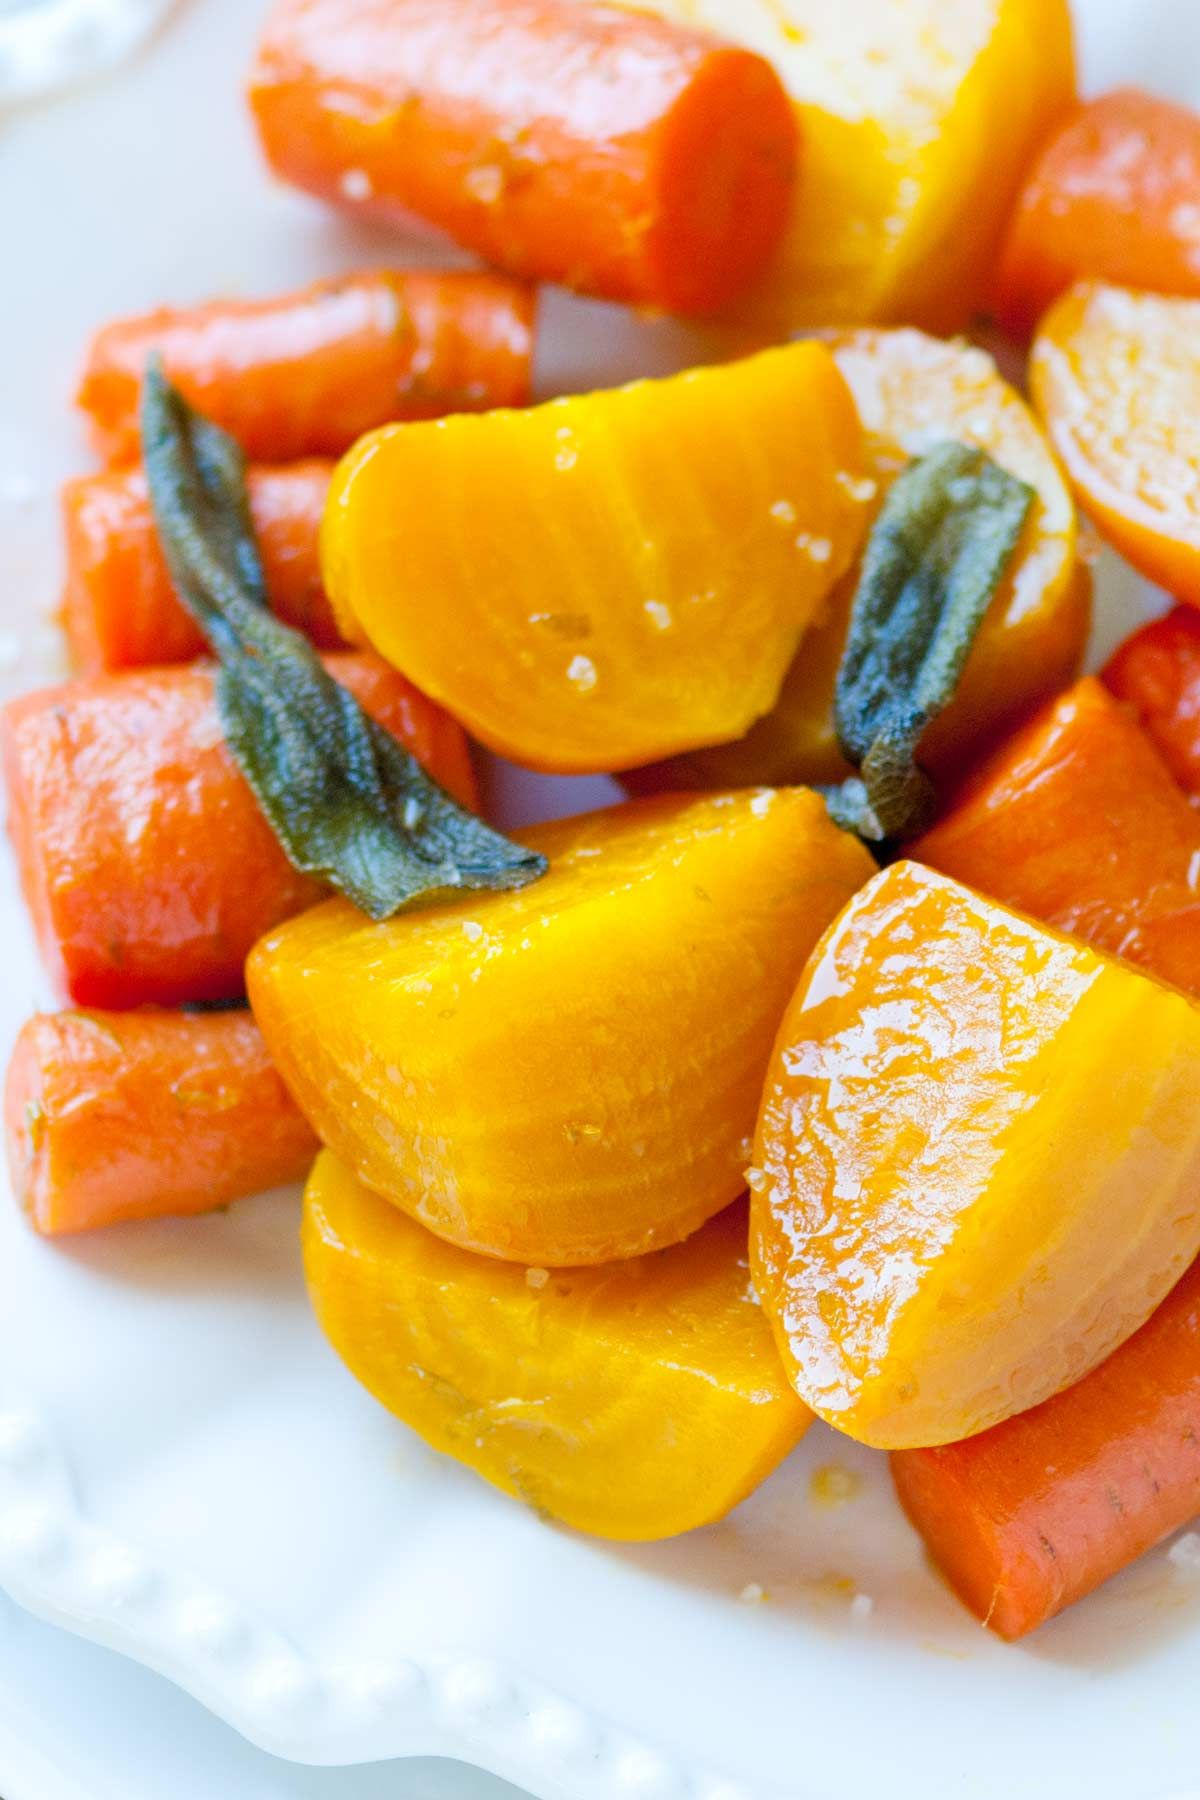 Roasted Beets And Carrots Recipe With Sage Recipe Roasted Beets And Carrots Sage Recipes Beet Recipes